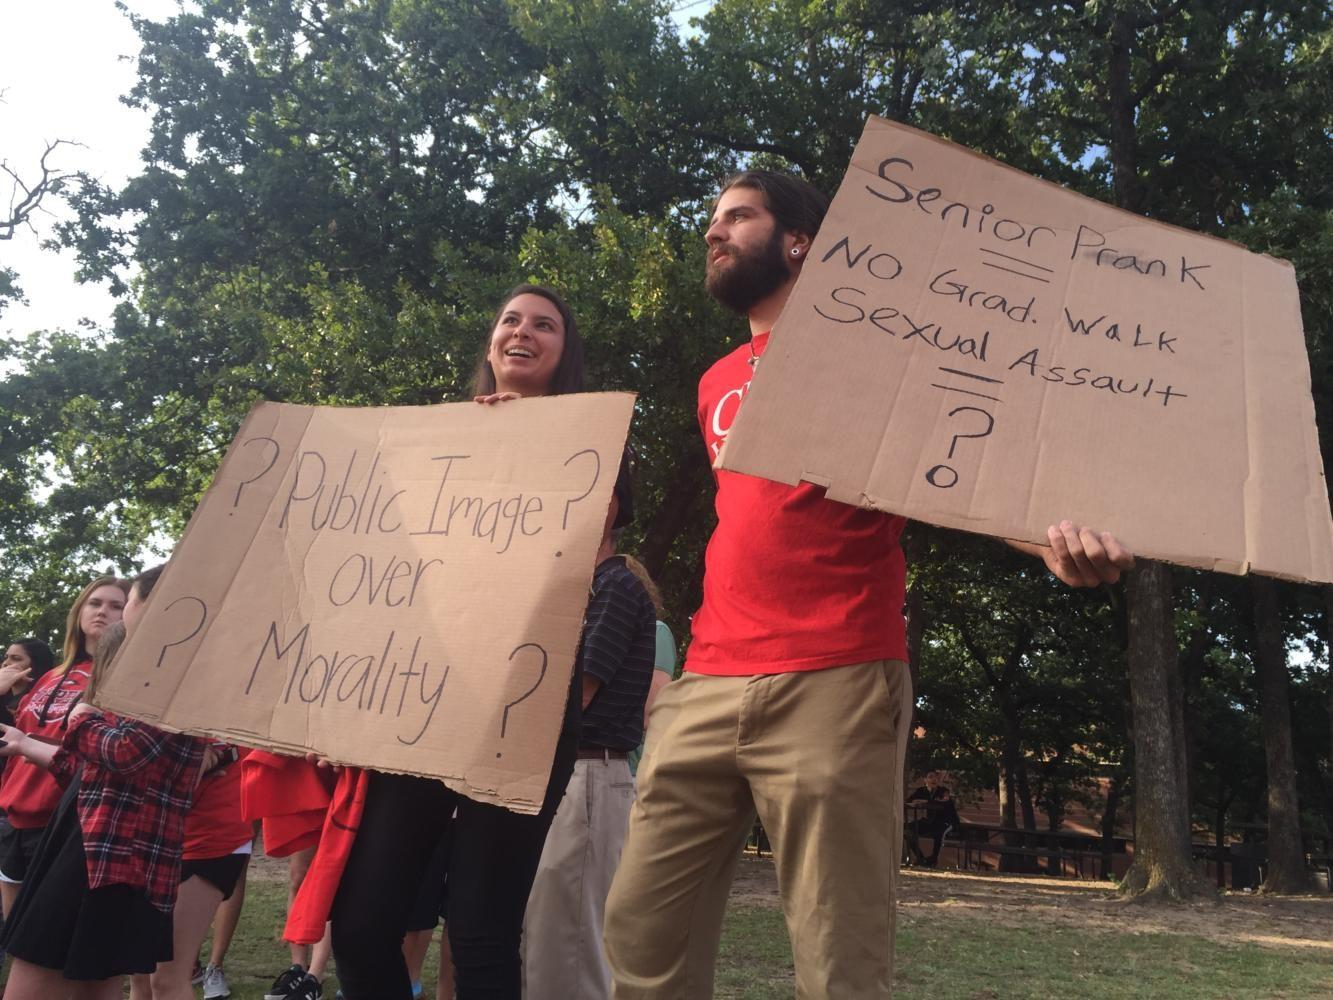 Demonstrators gather outside CHS to show support of victim of alleged campus incident